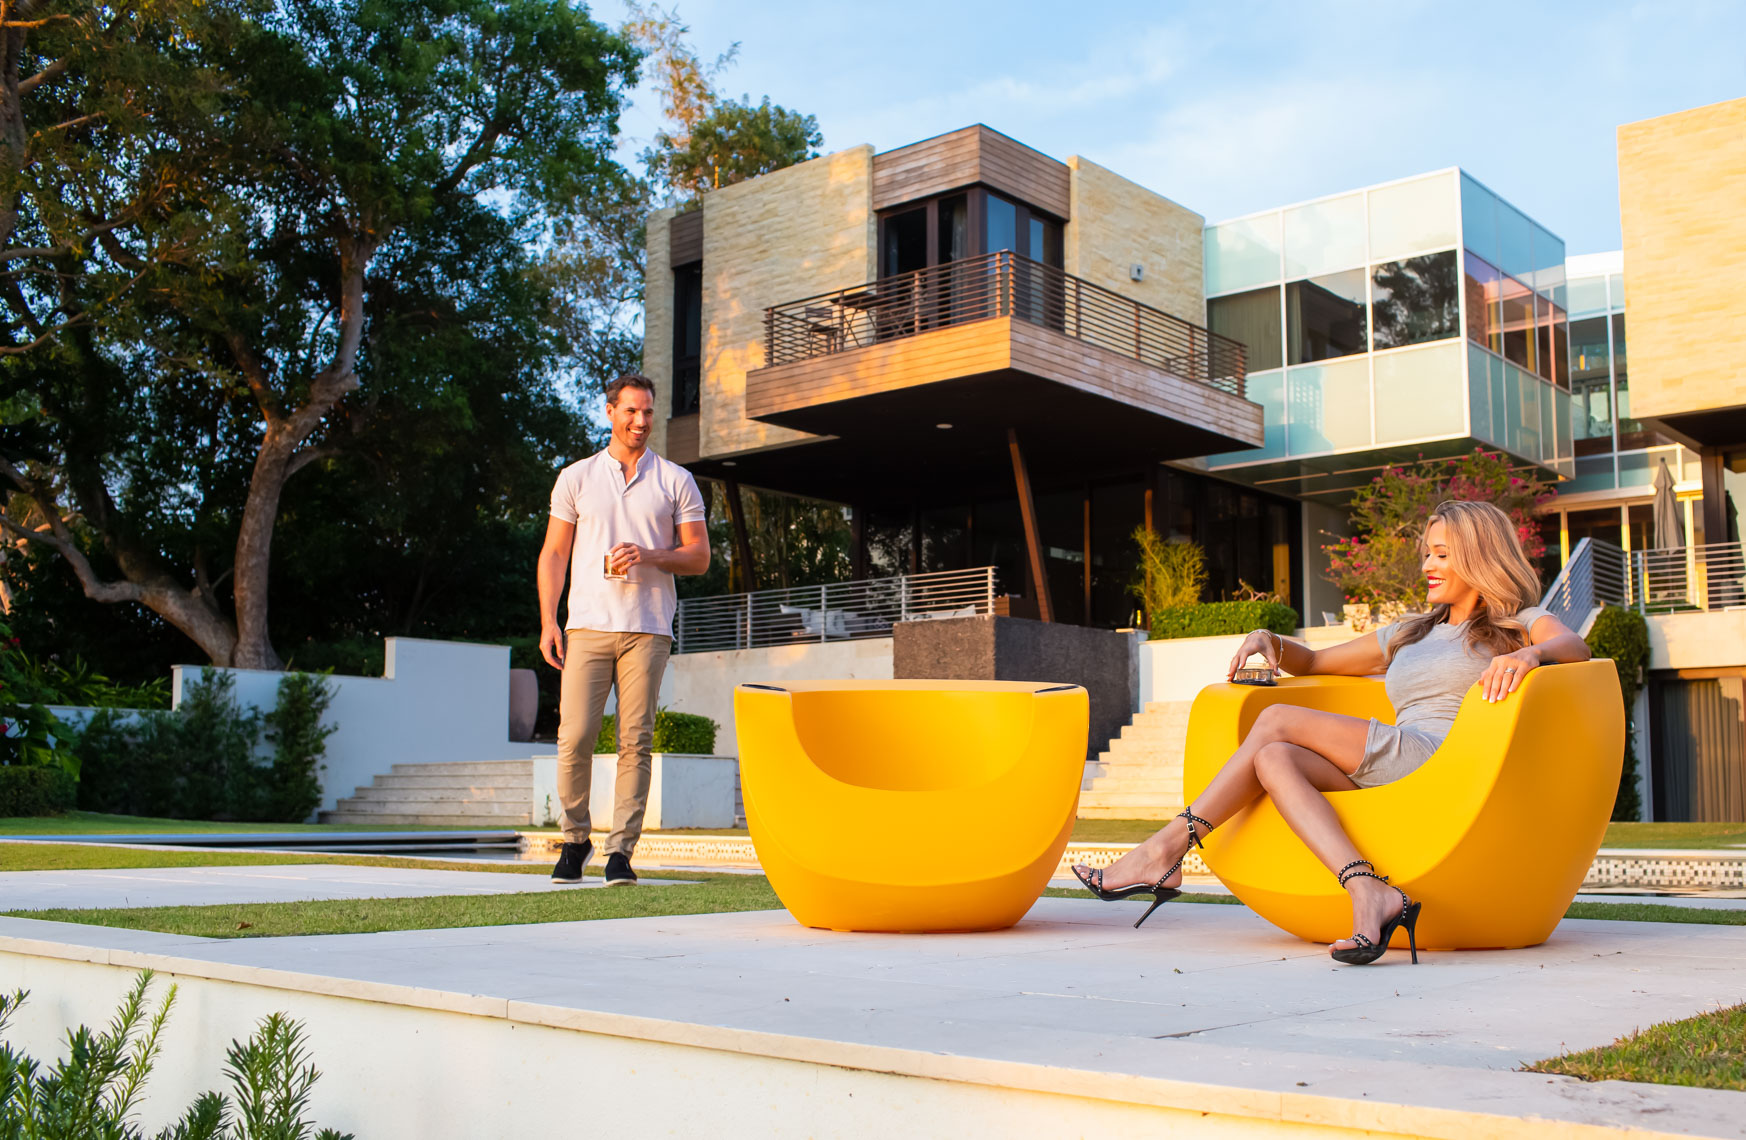 Couple on patio modern home_1906_RobertHolland